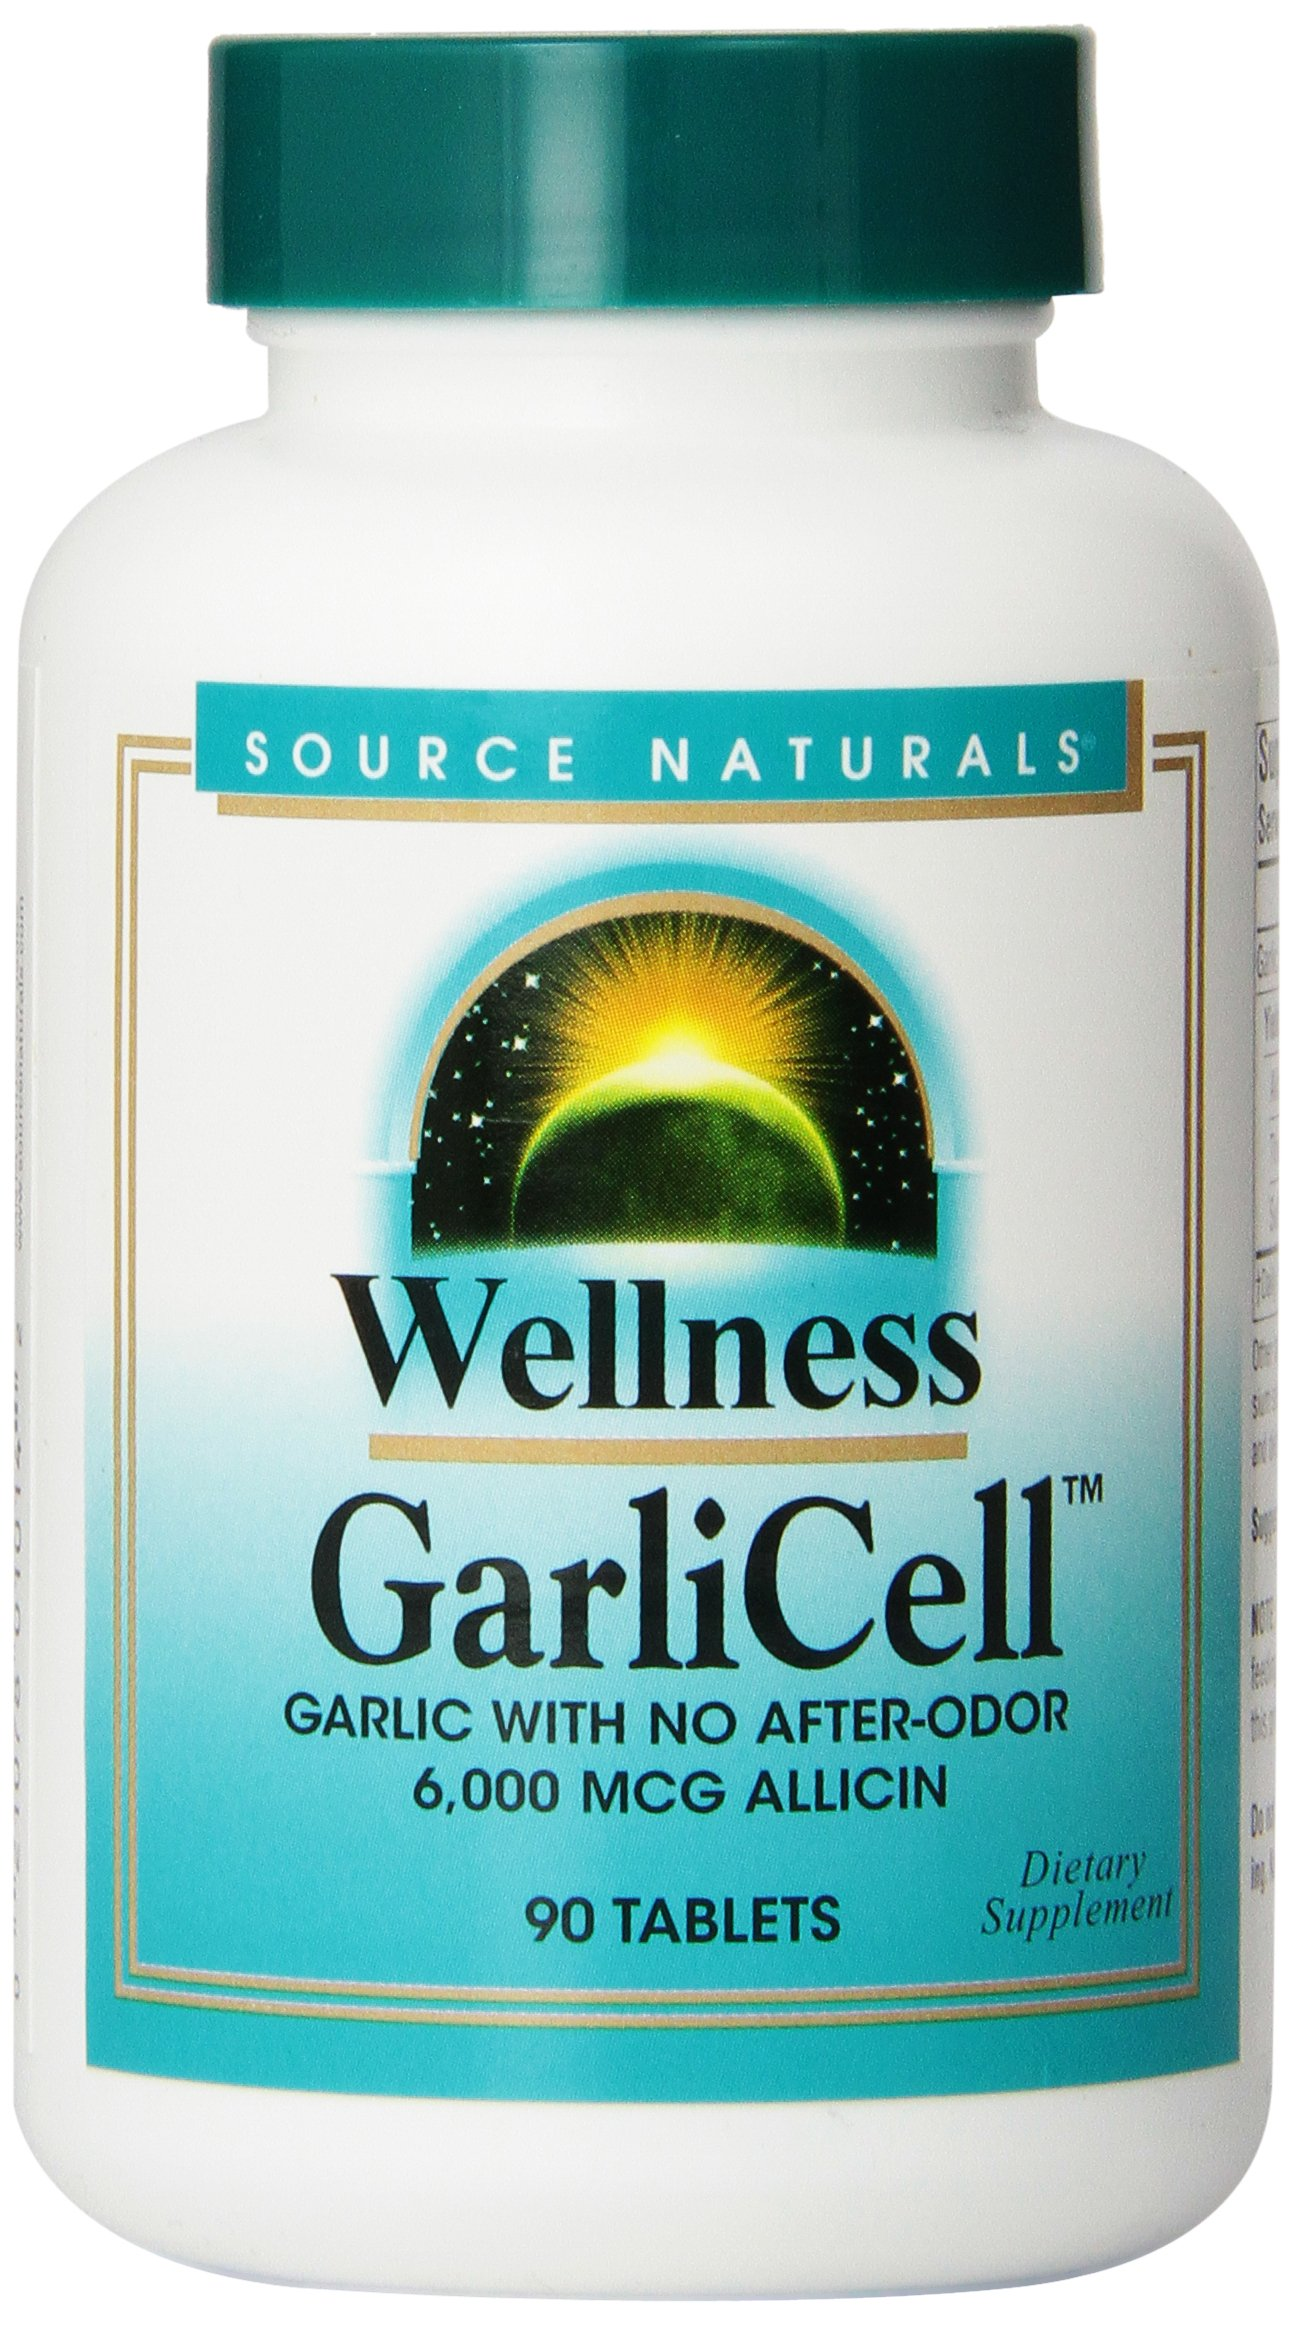 Source Naturals Wellness GarliCell 6000mcg, Garlic with No After-Odor, 90 Tablets